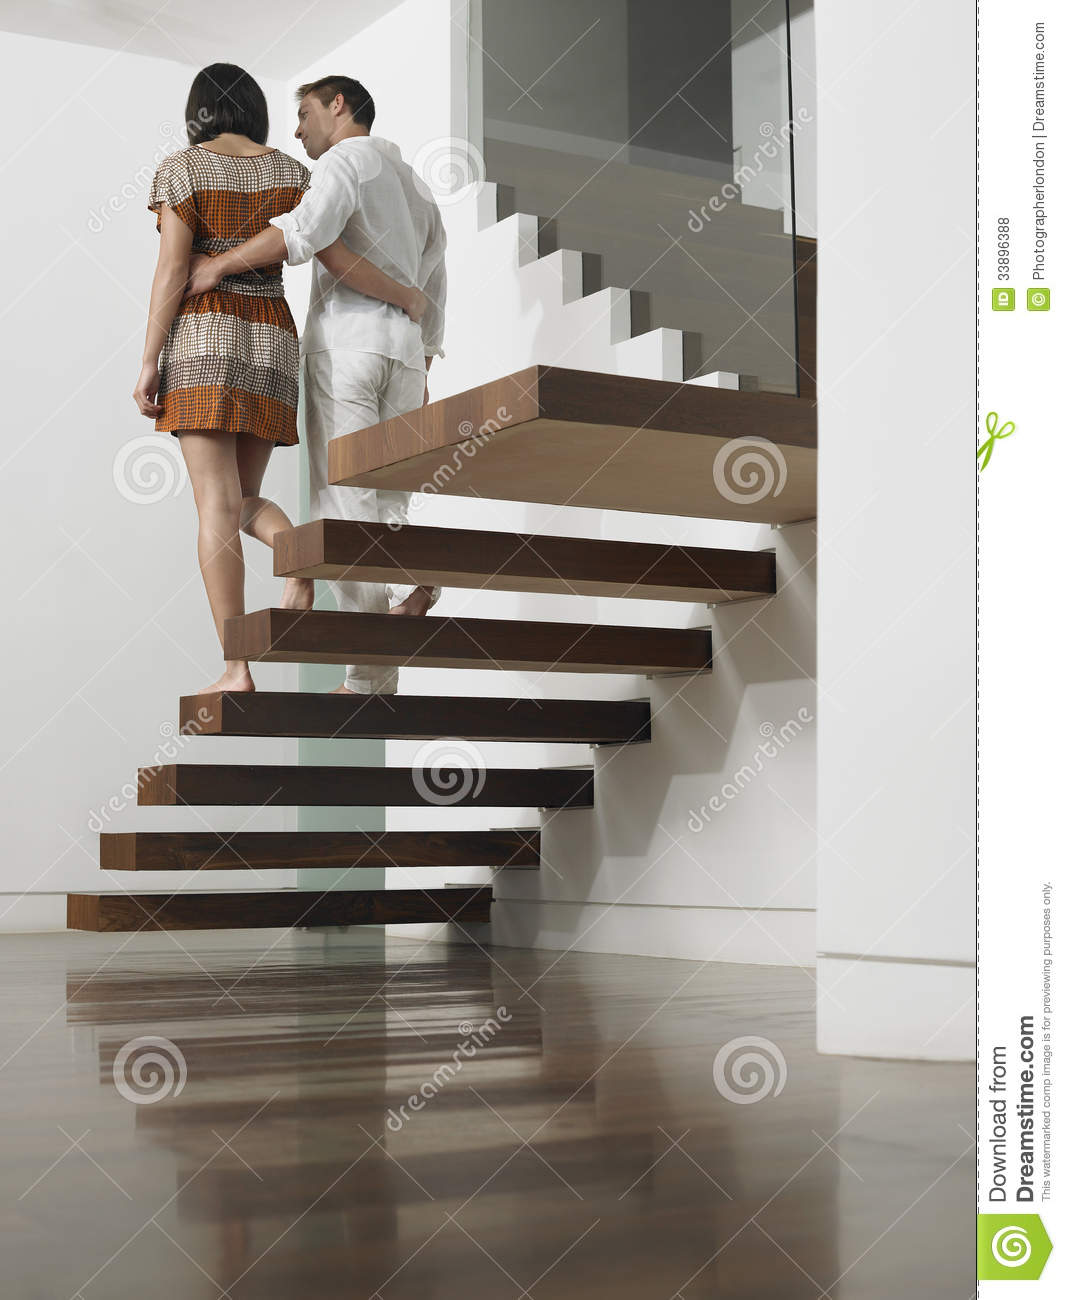 Desending stairs photo 29